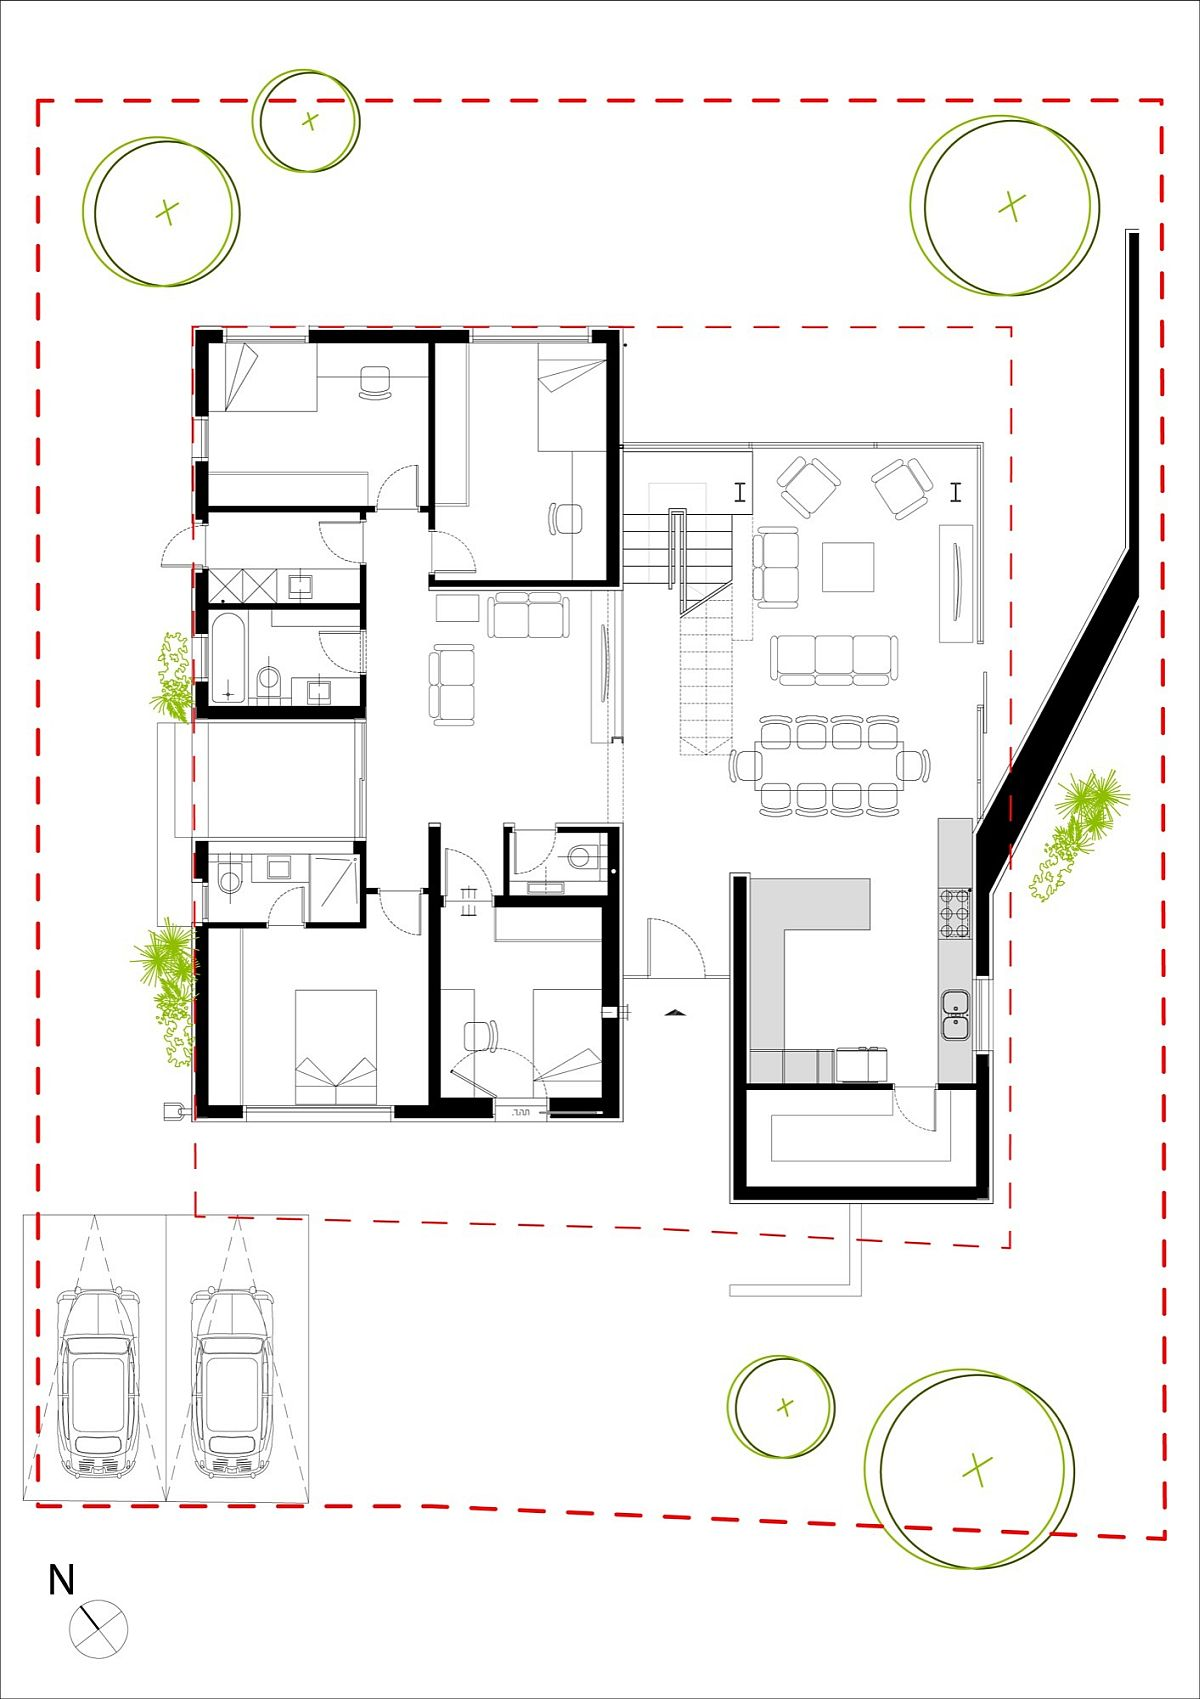 Floor plan of lower level of contemporary home in Israel